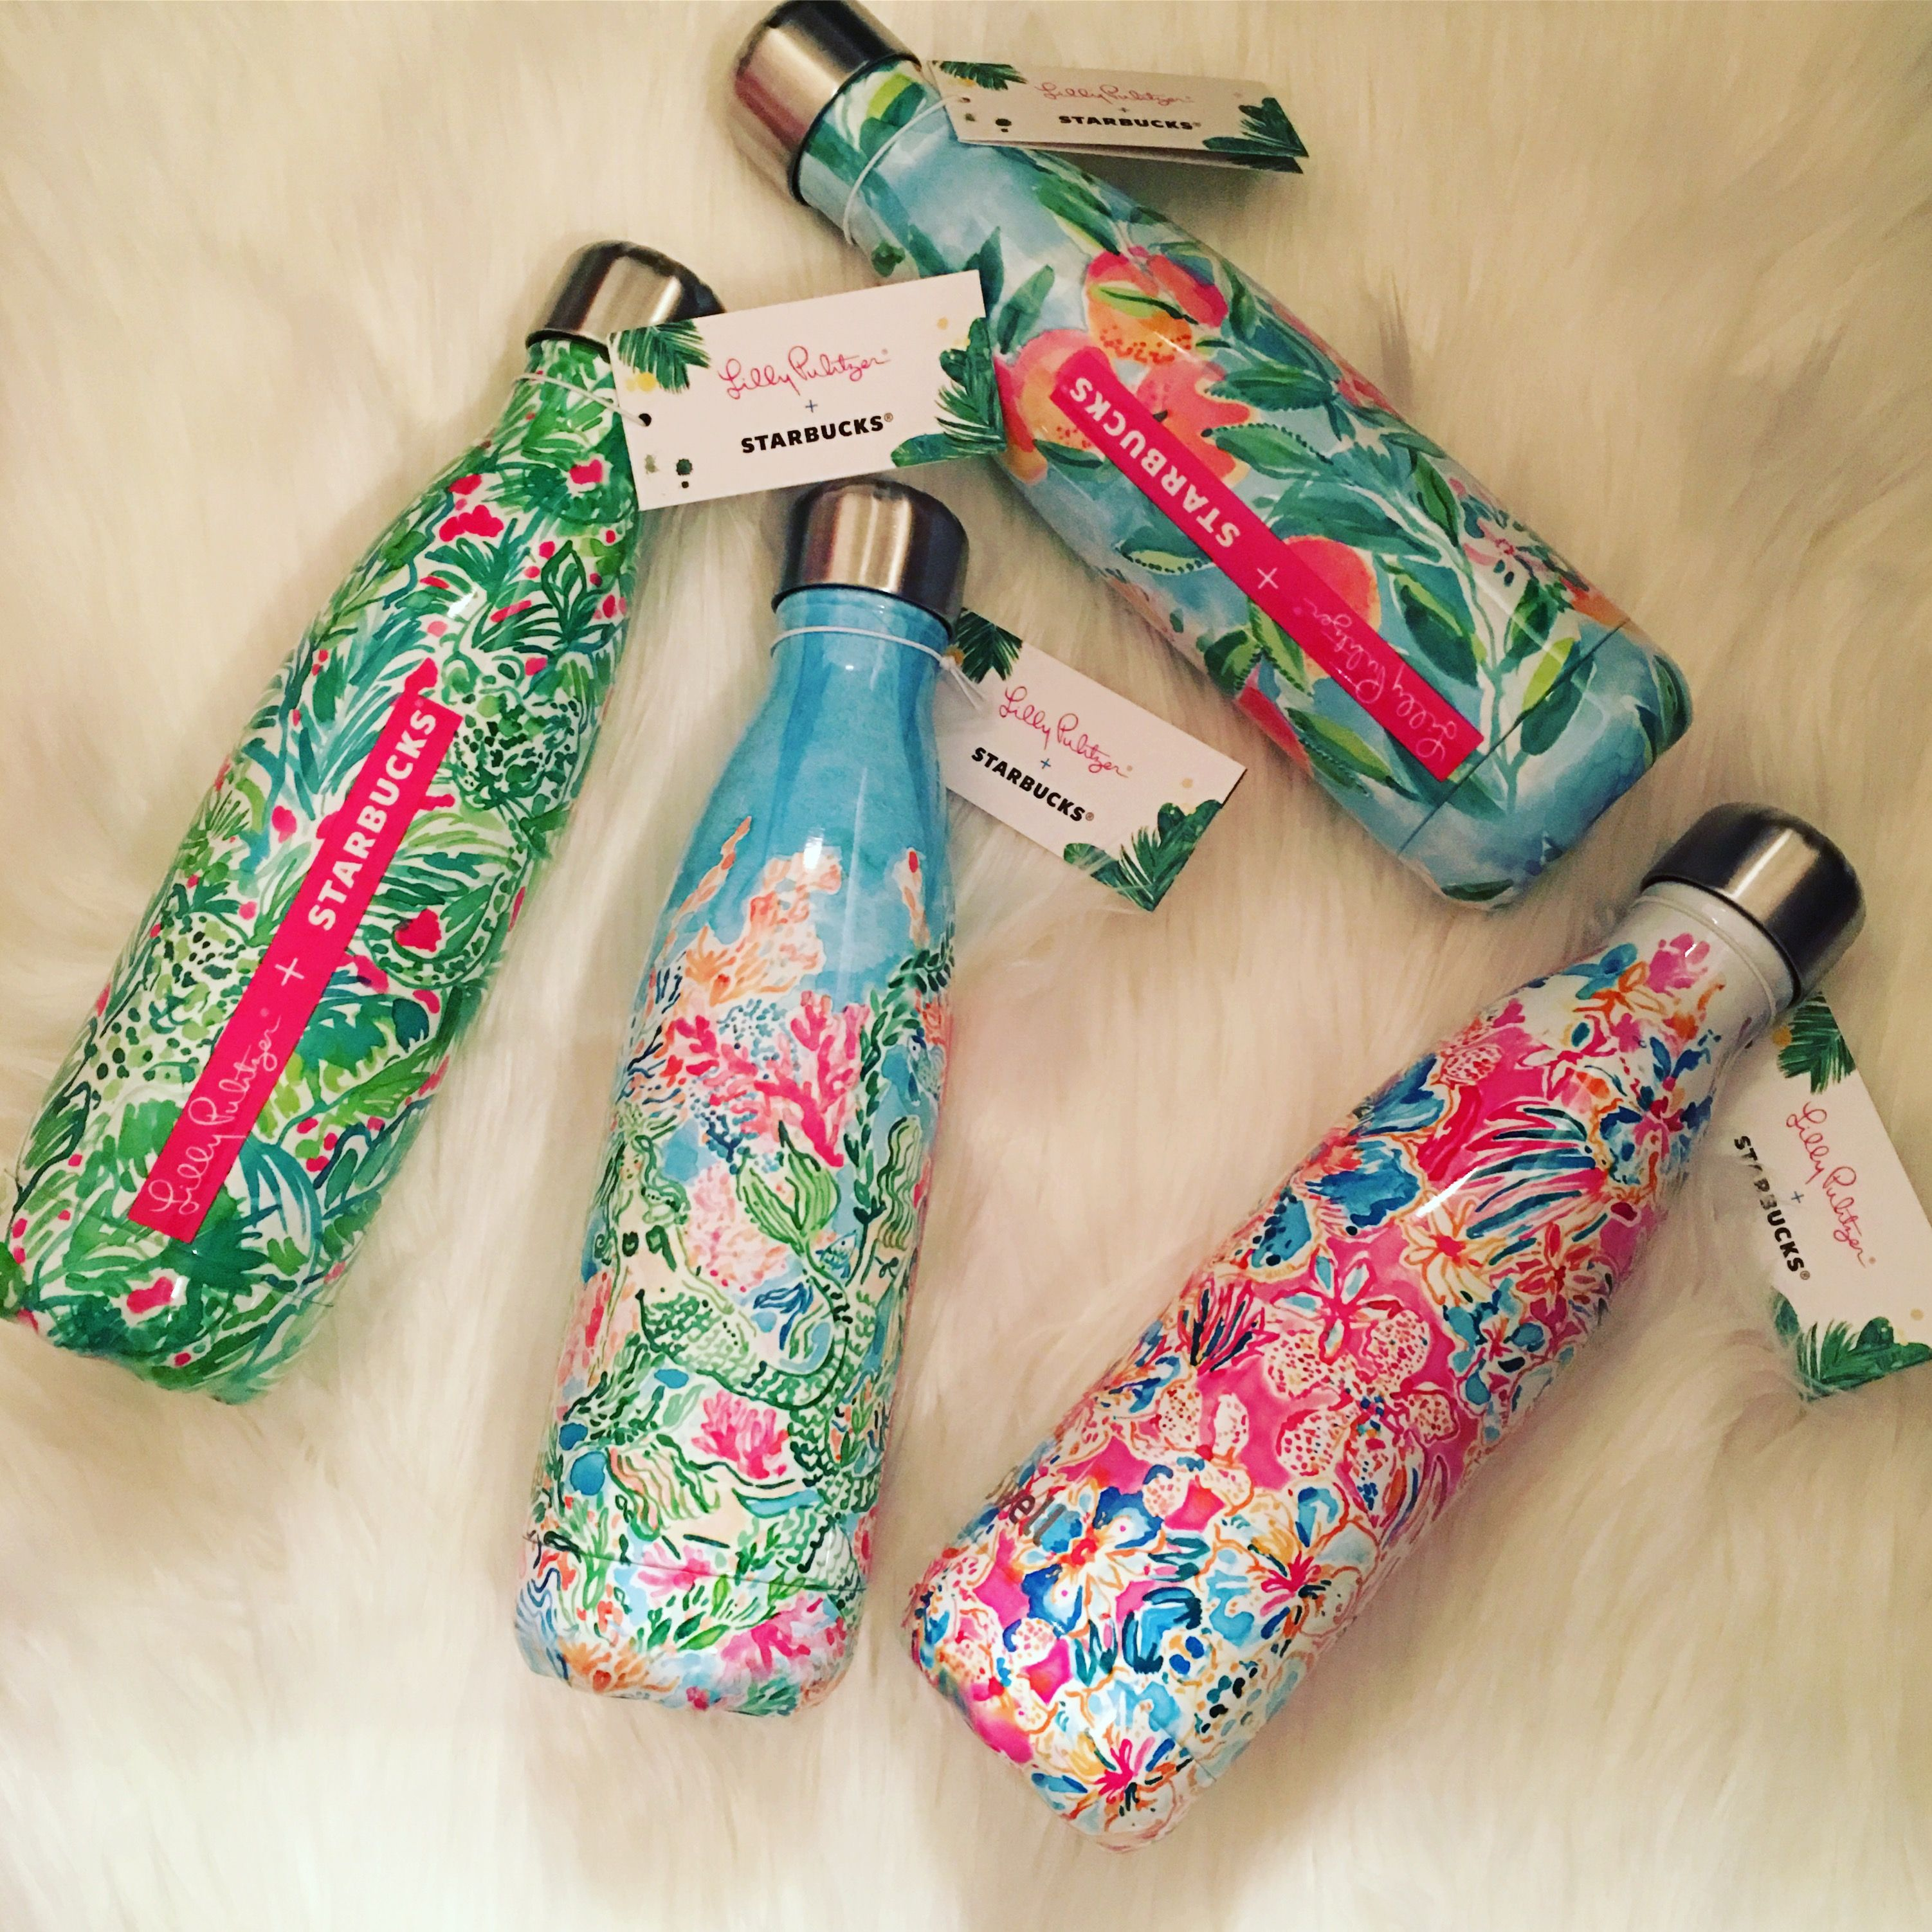 Lilly Pulitzer Starbucks Swell Bottles Complete Set It